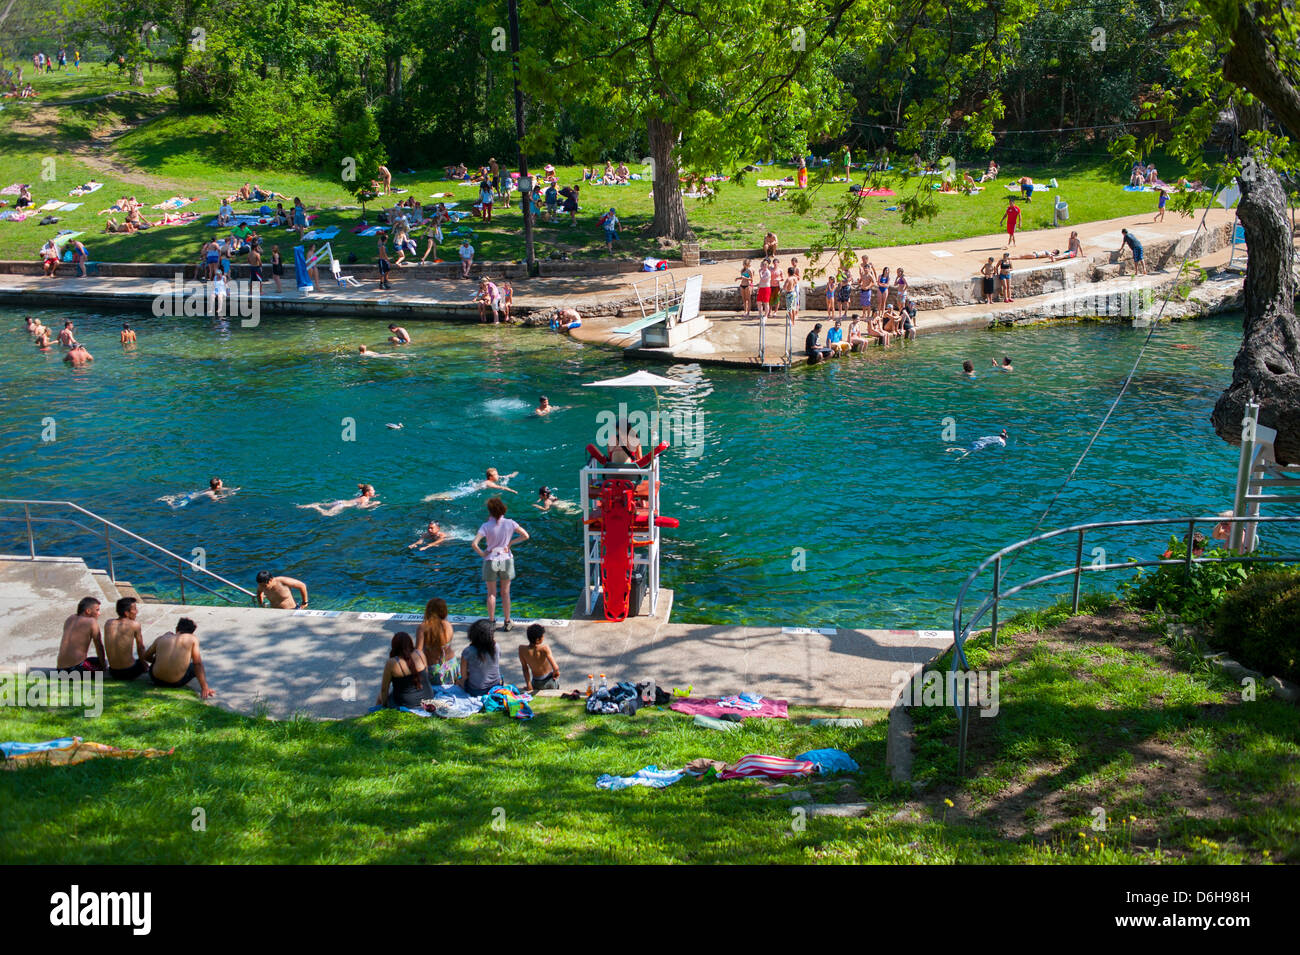 usa-texas-tx-austin-barton-springs-pool-